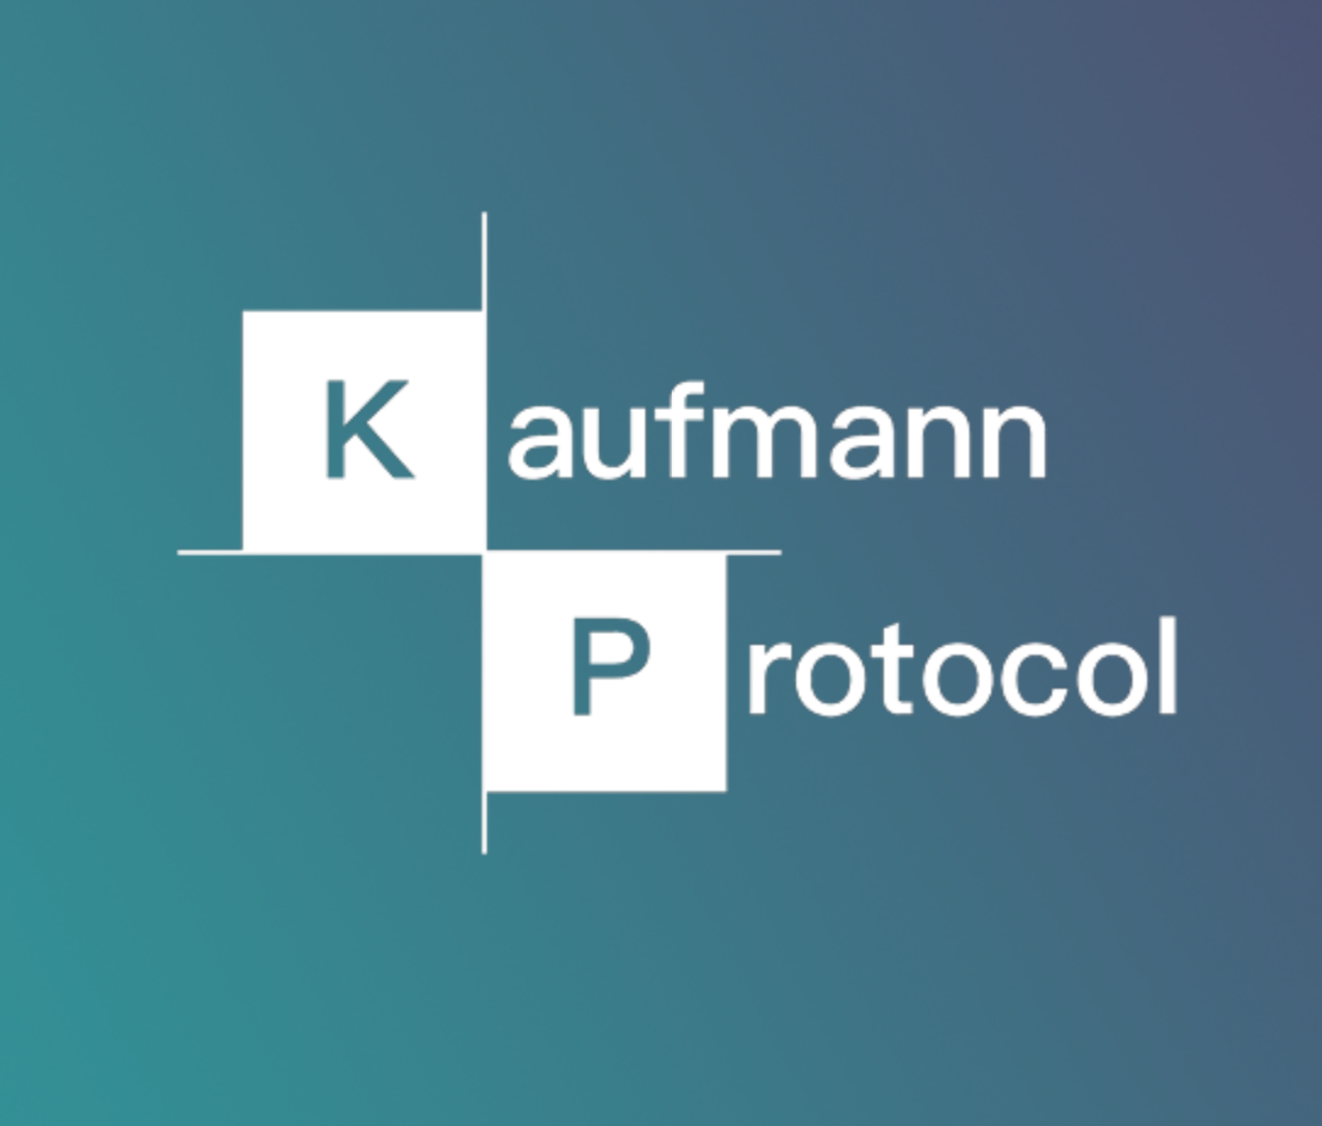 People Unlimited and The Kaufmann Protocol